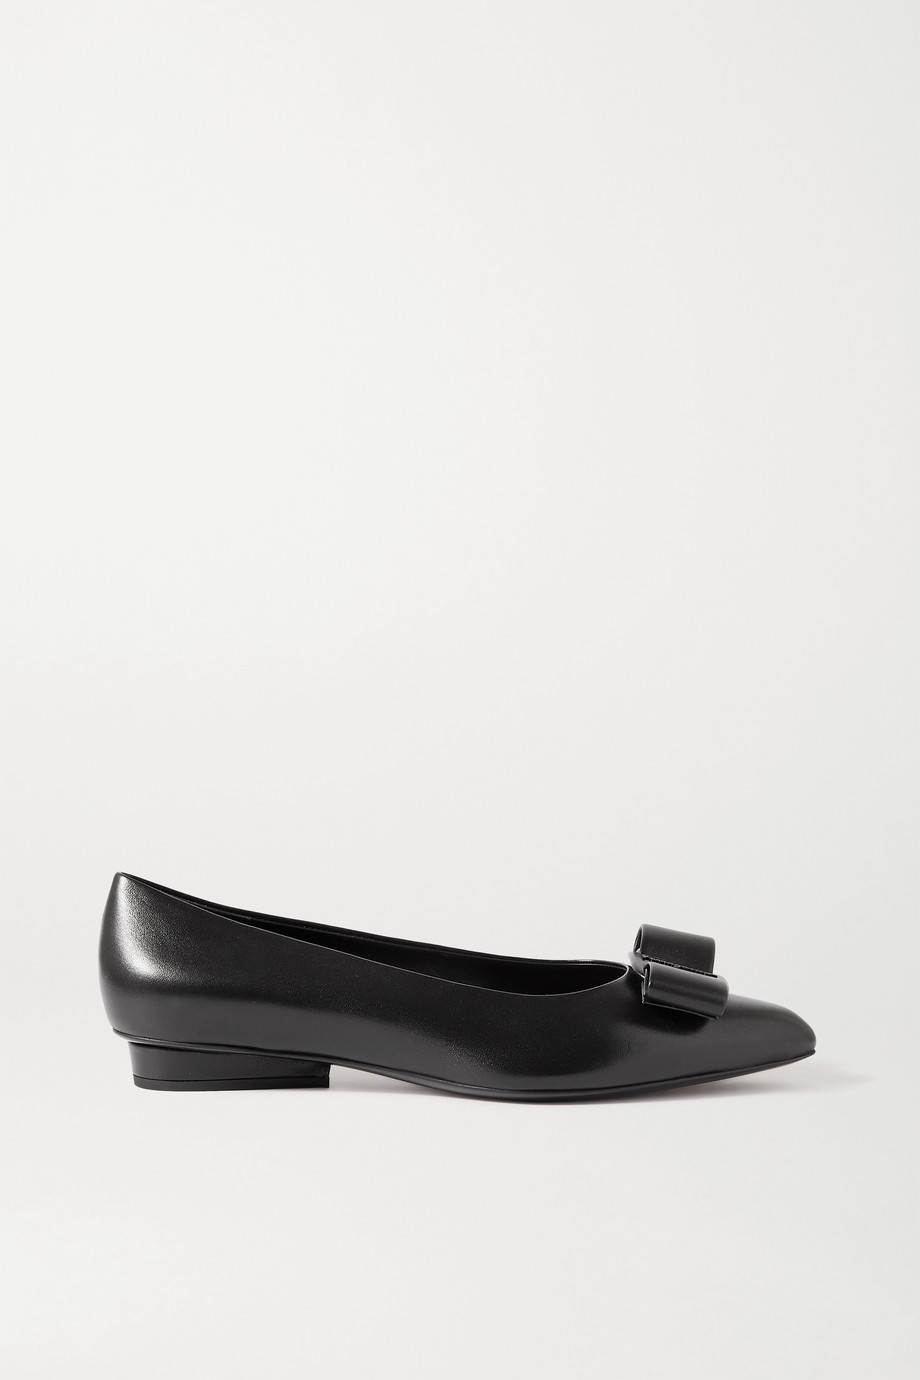 SALVATORE FERRAGAMO Viva bow-embellished leather point-toe pumps